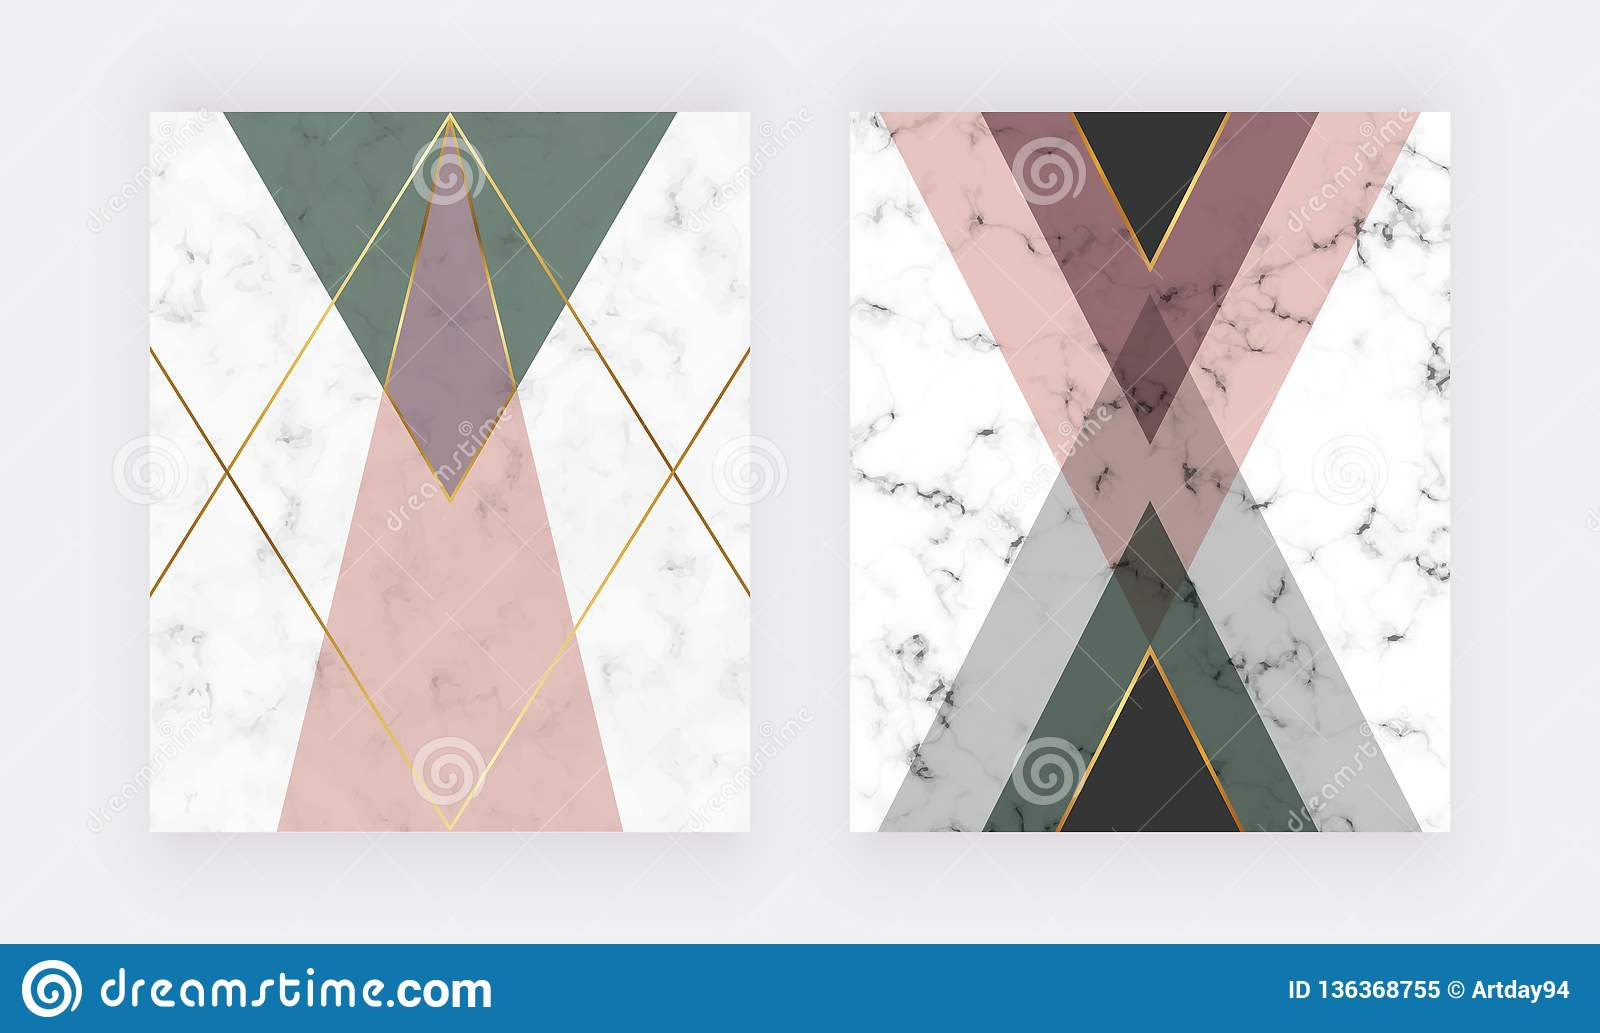 Pink and green geometric design with golden lines. Fashion design for banner, flyer, poster, wedding invitation, card.